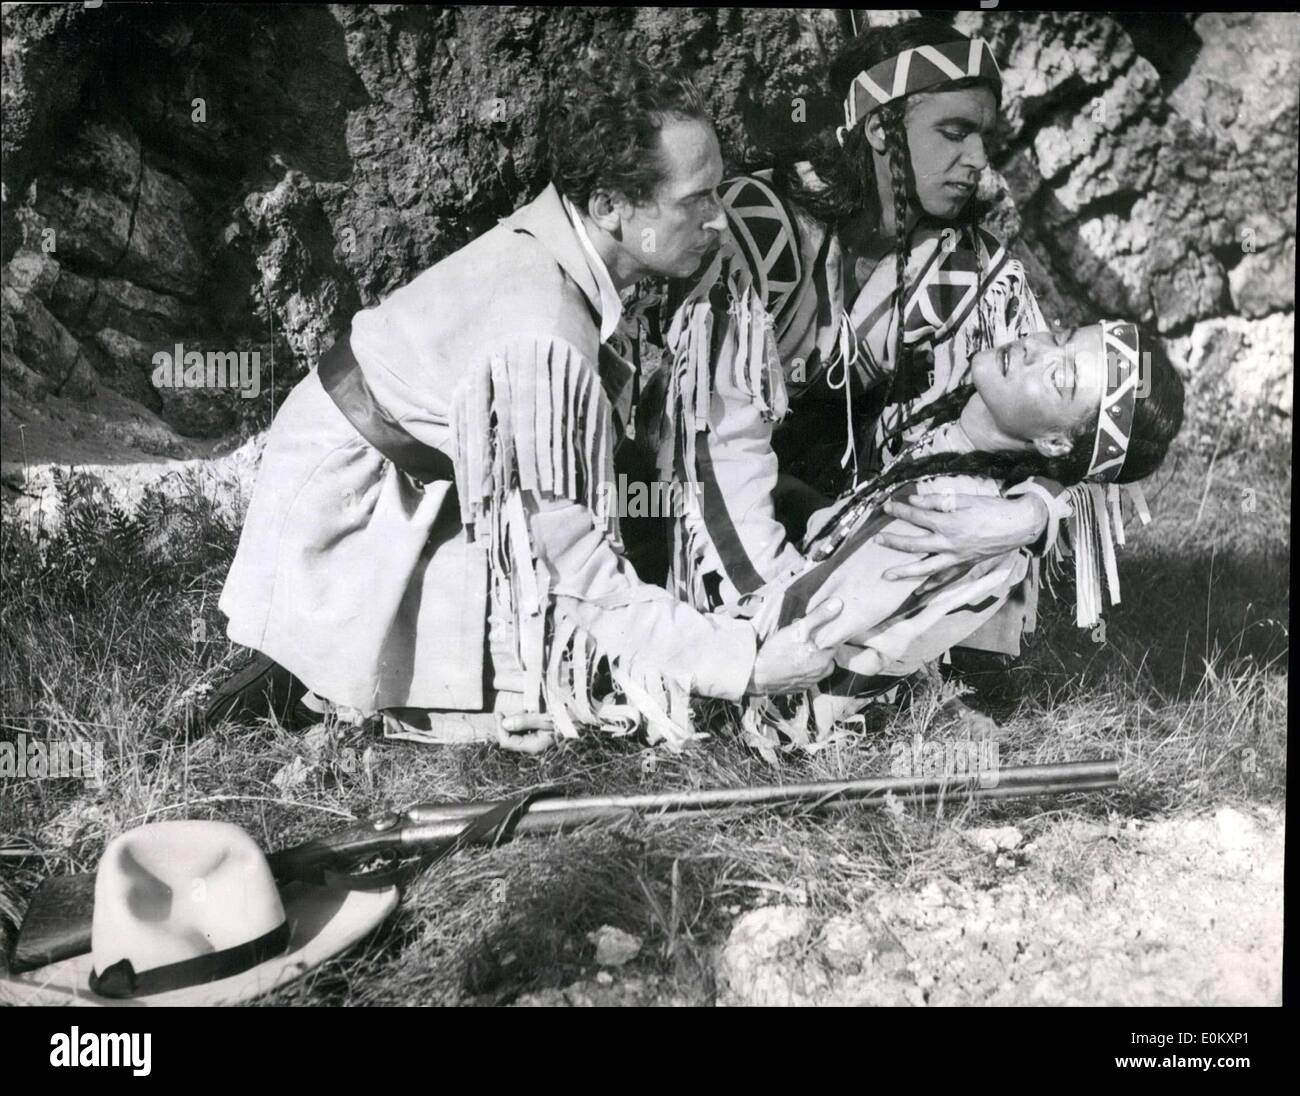 Aug. 06, 1952 - The Winnetou play came to Bad Segeberg in Germany on 8-16-1952. Pictured here is a scene from the play in which - Stock Image